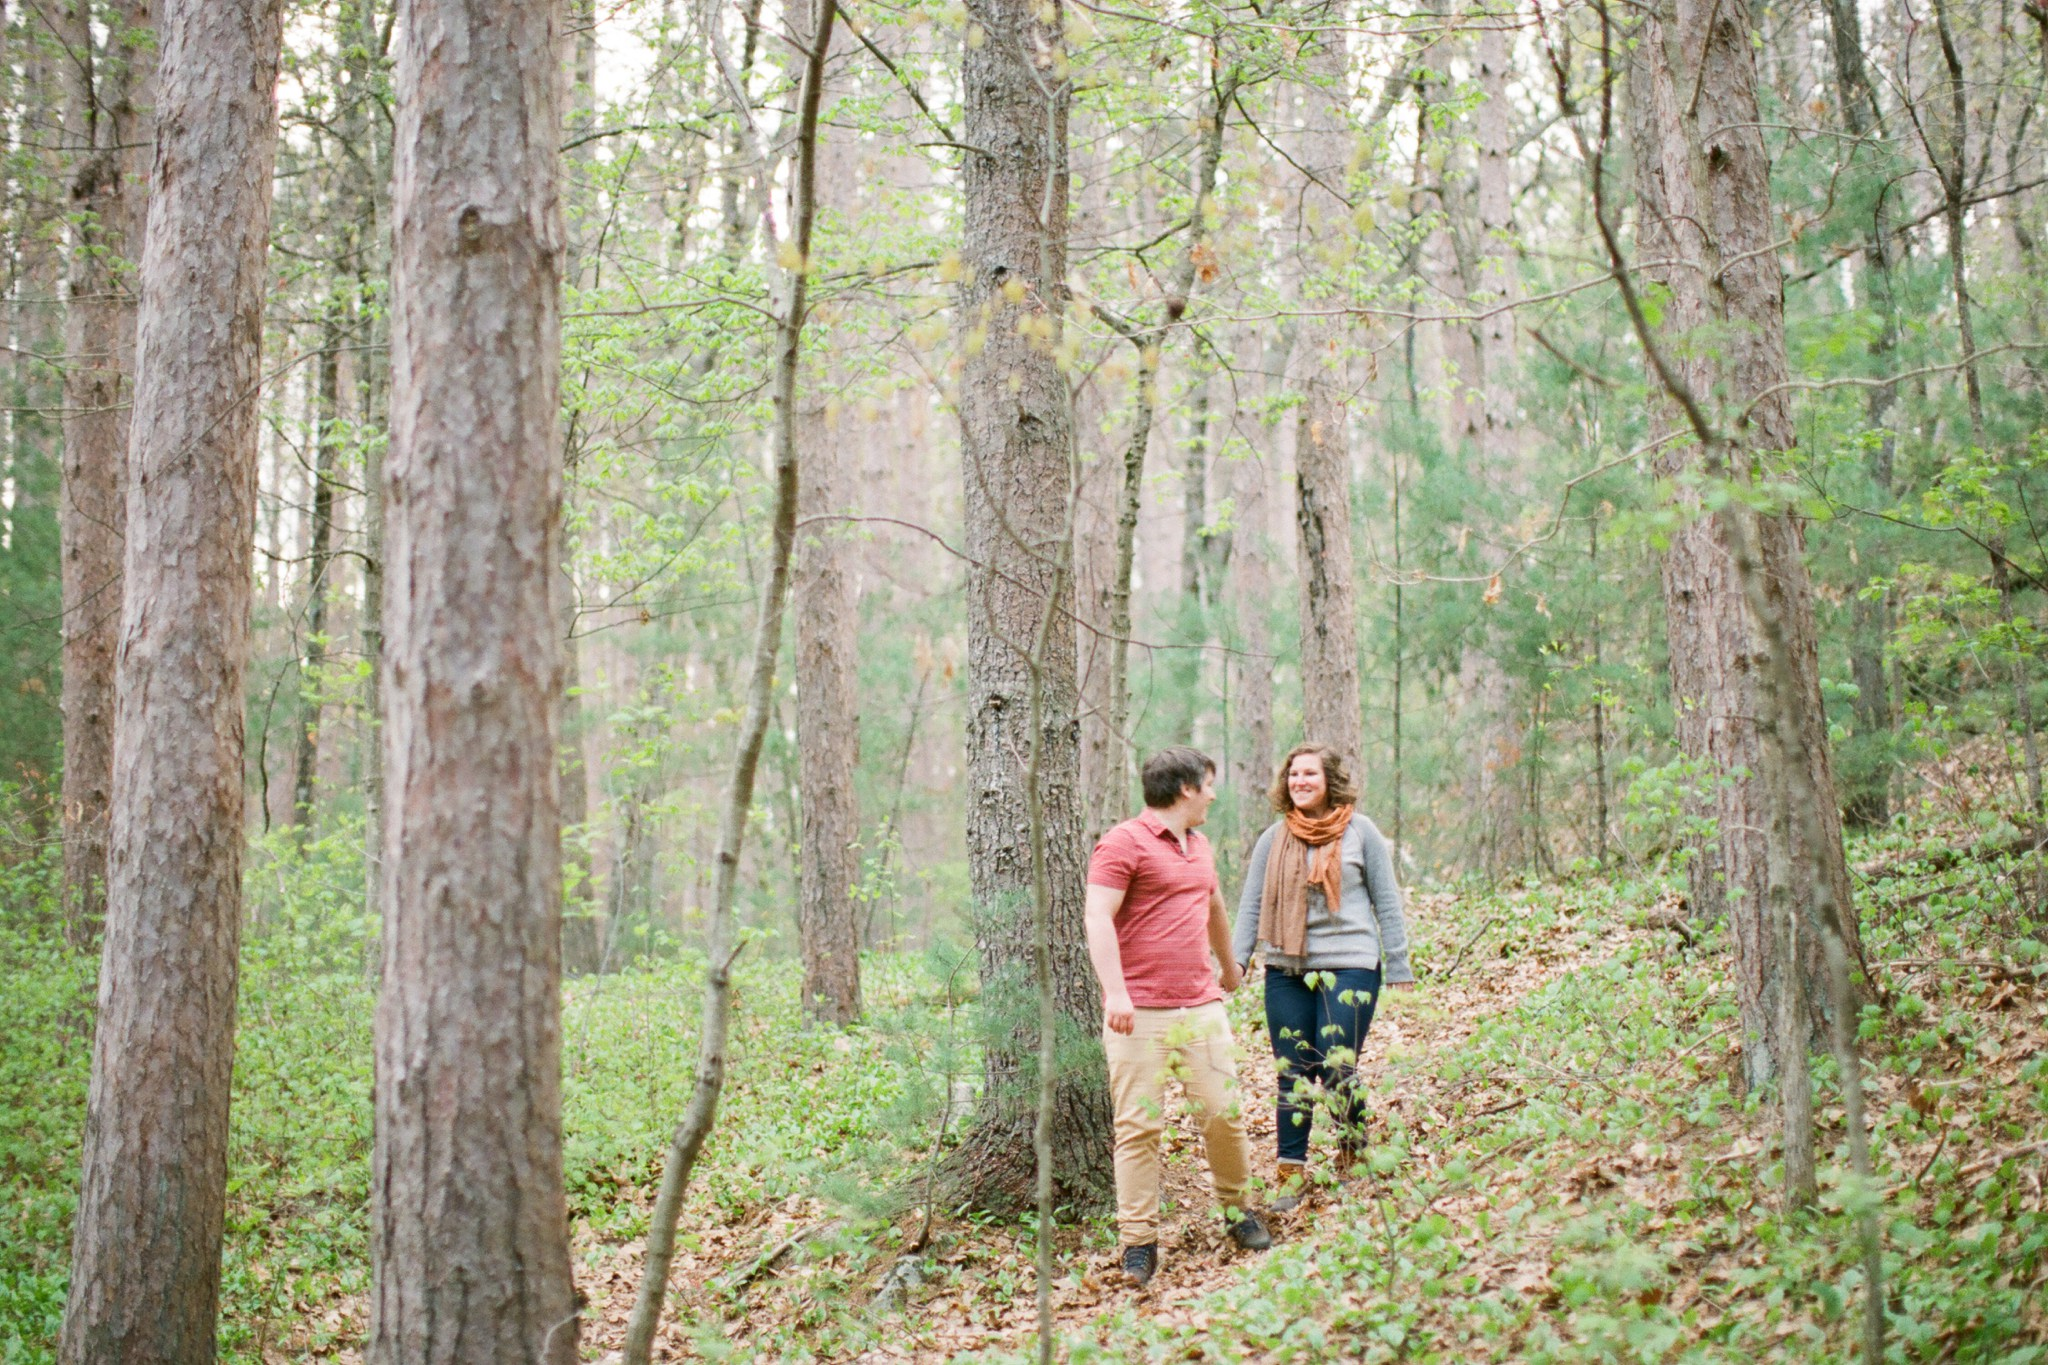 deborah_zoe_photography_engagement_session_0096.JPG